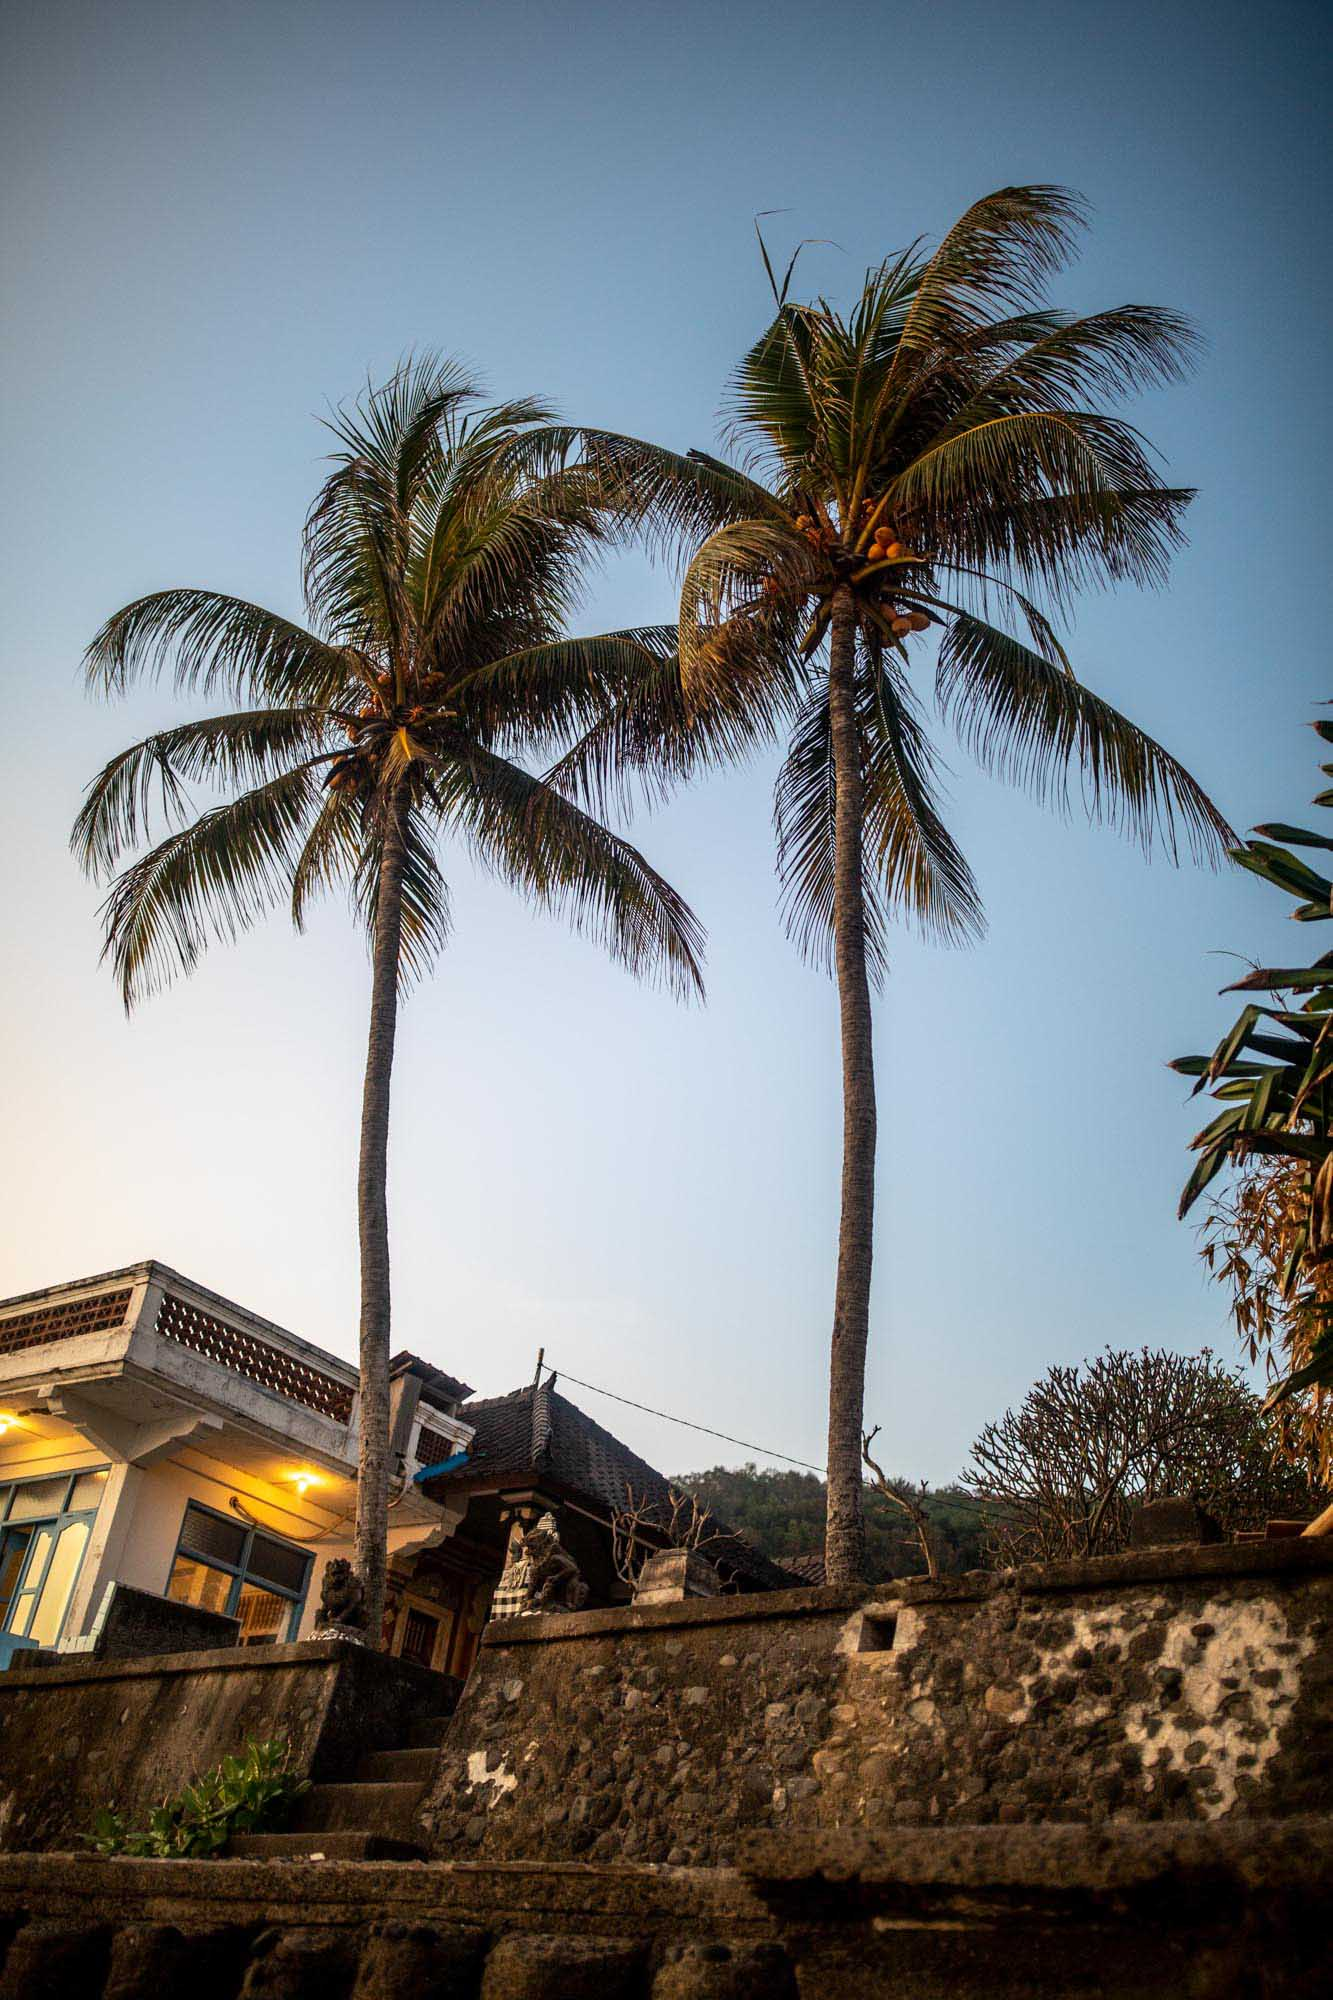 Two palm trees near beach in Candidasa, Bali, Indonesia